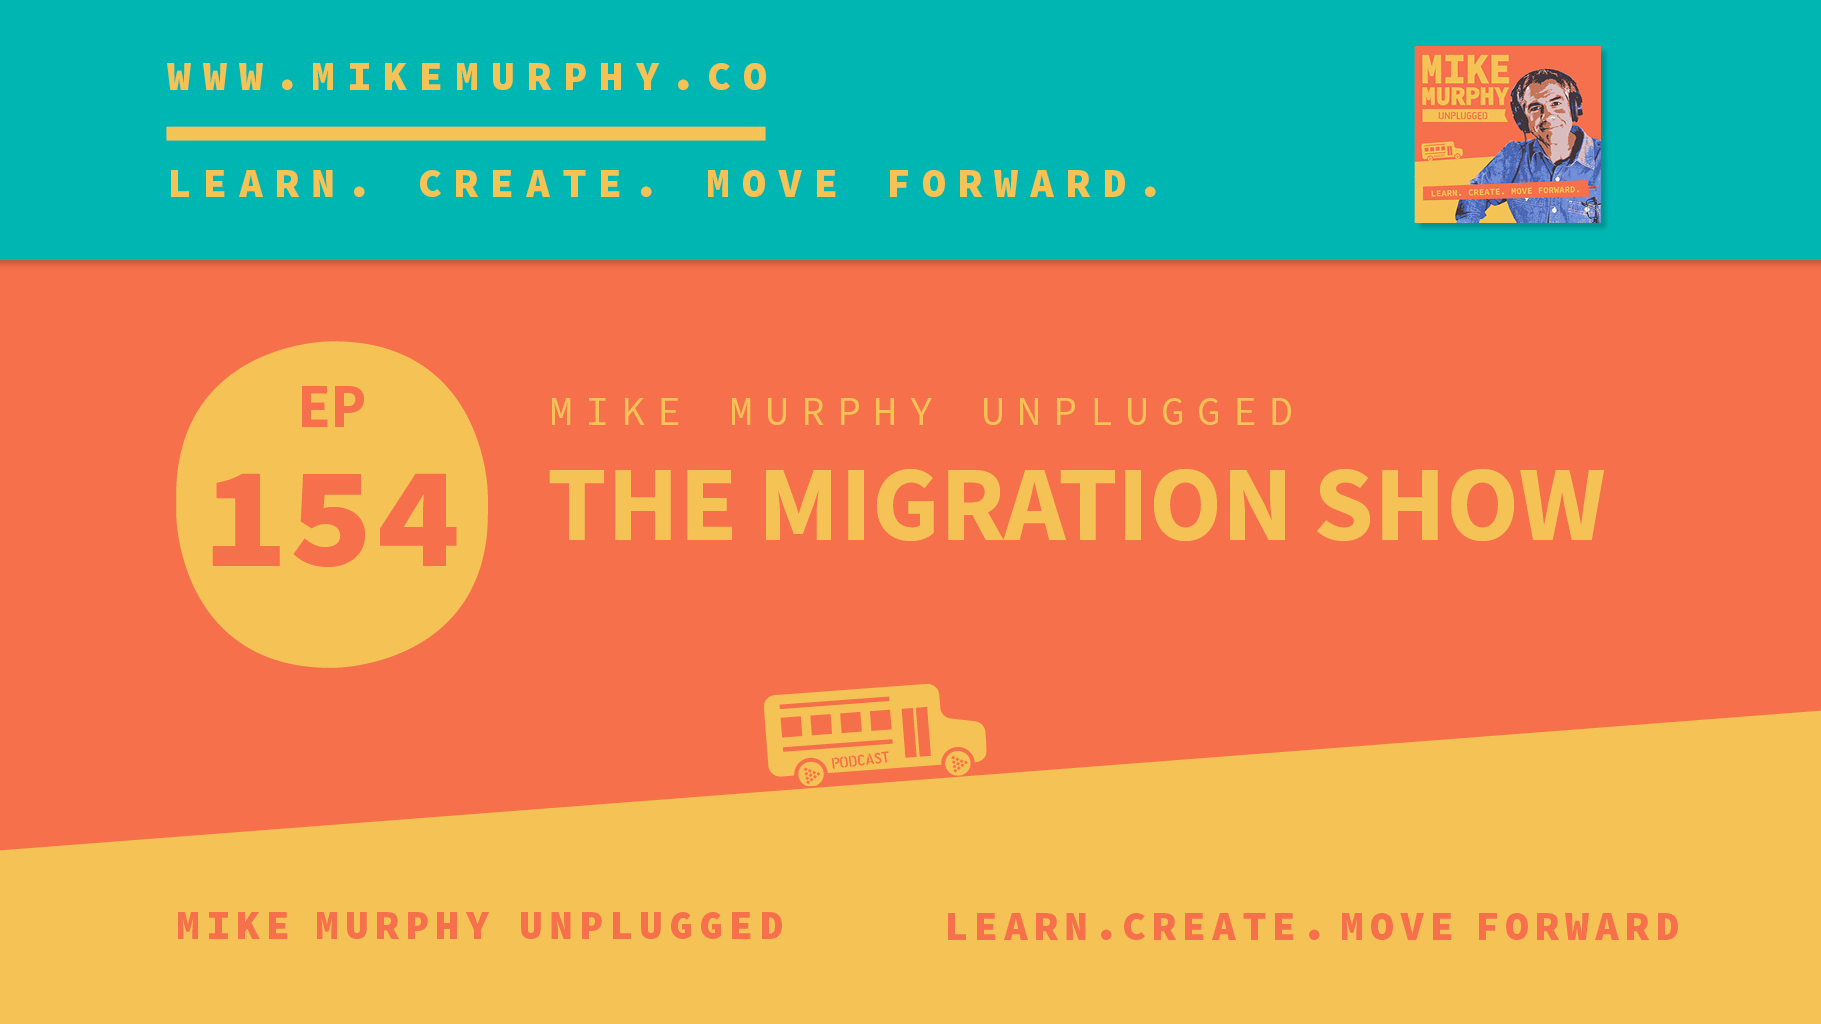 The Migration Show - Mike Murphy Co